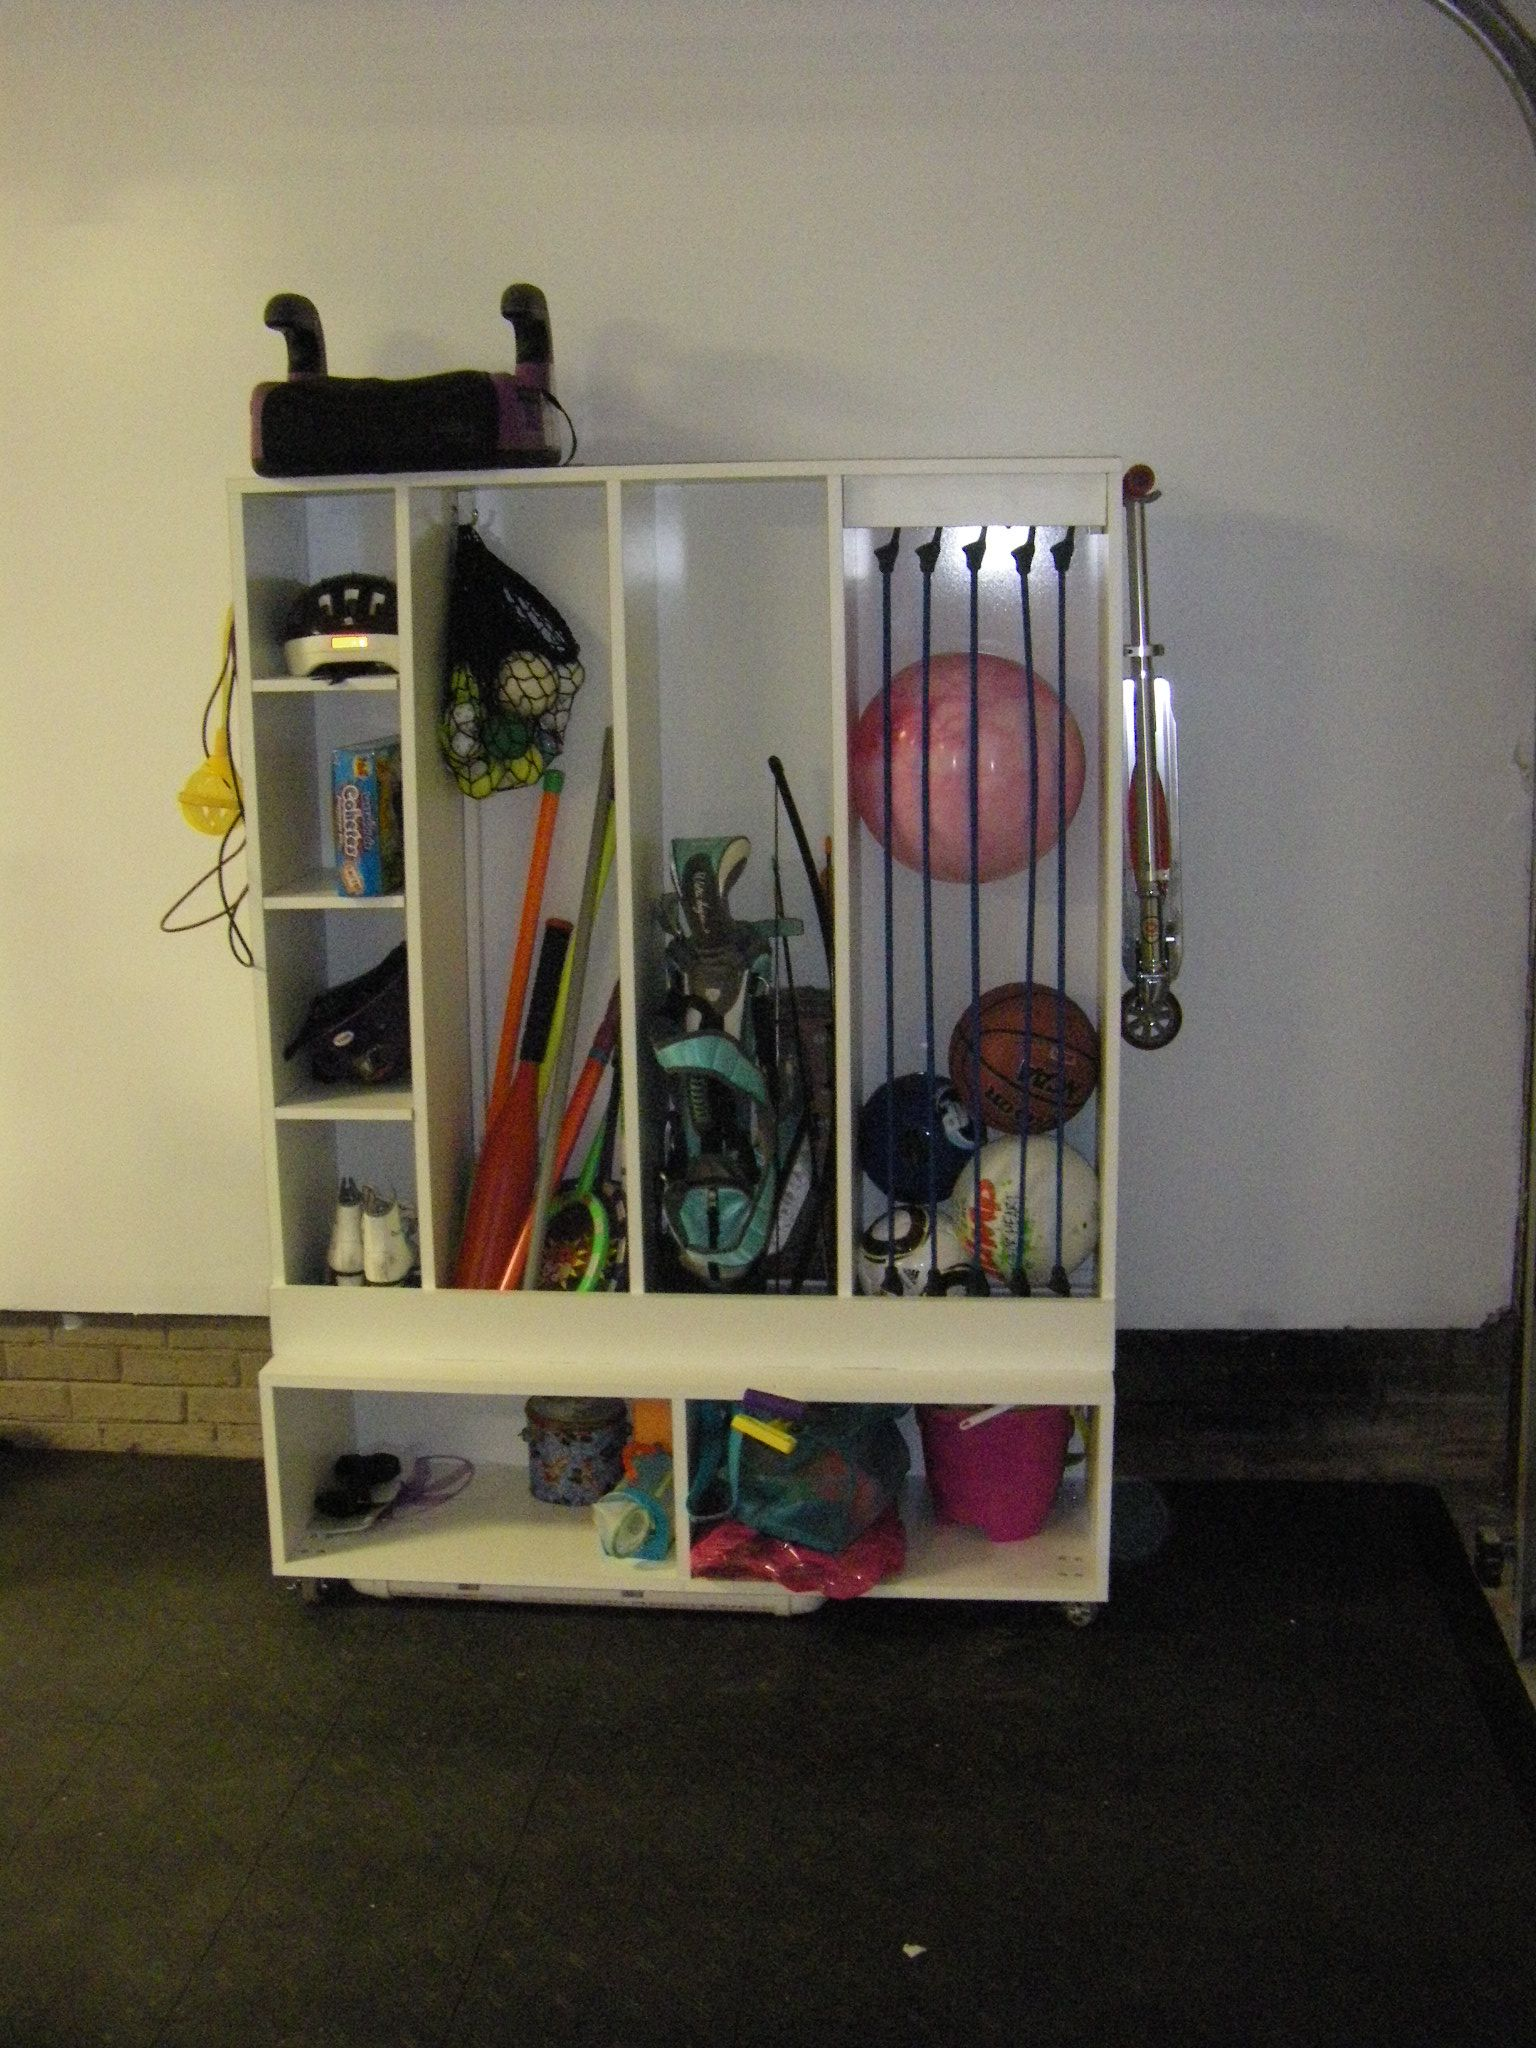 My husband just built this great garage storage caddy for